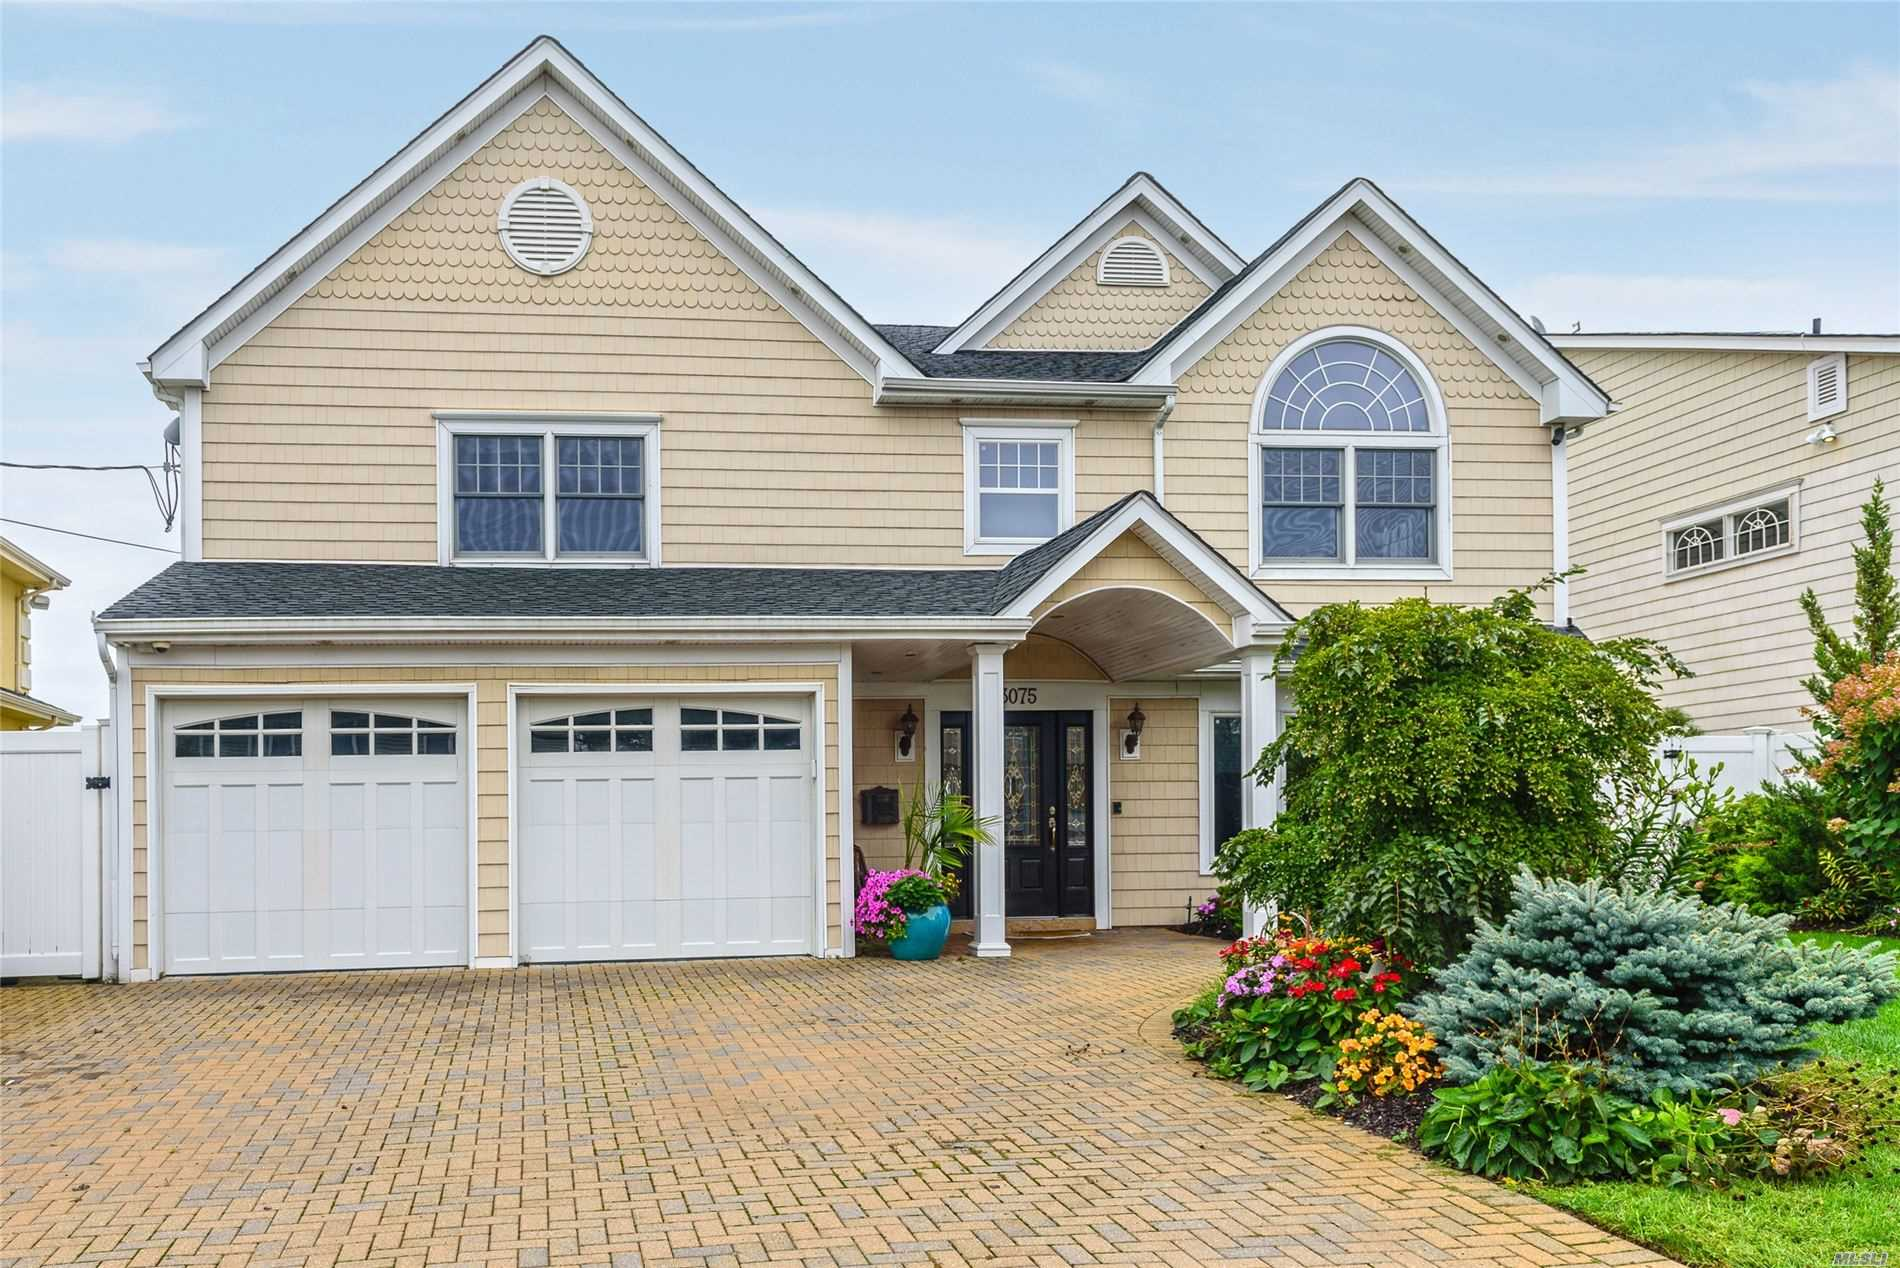 3075 Shore Dr - Merrick, New York